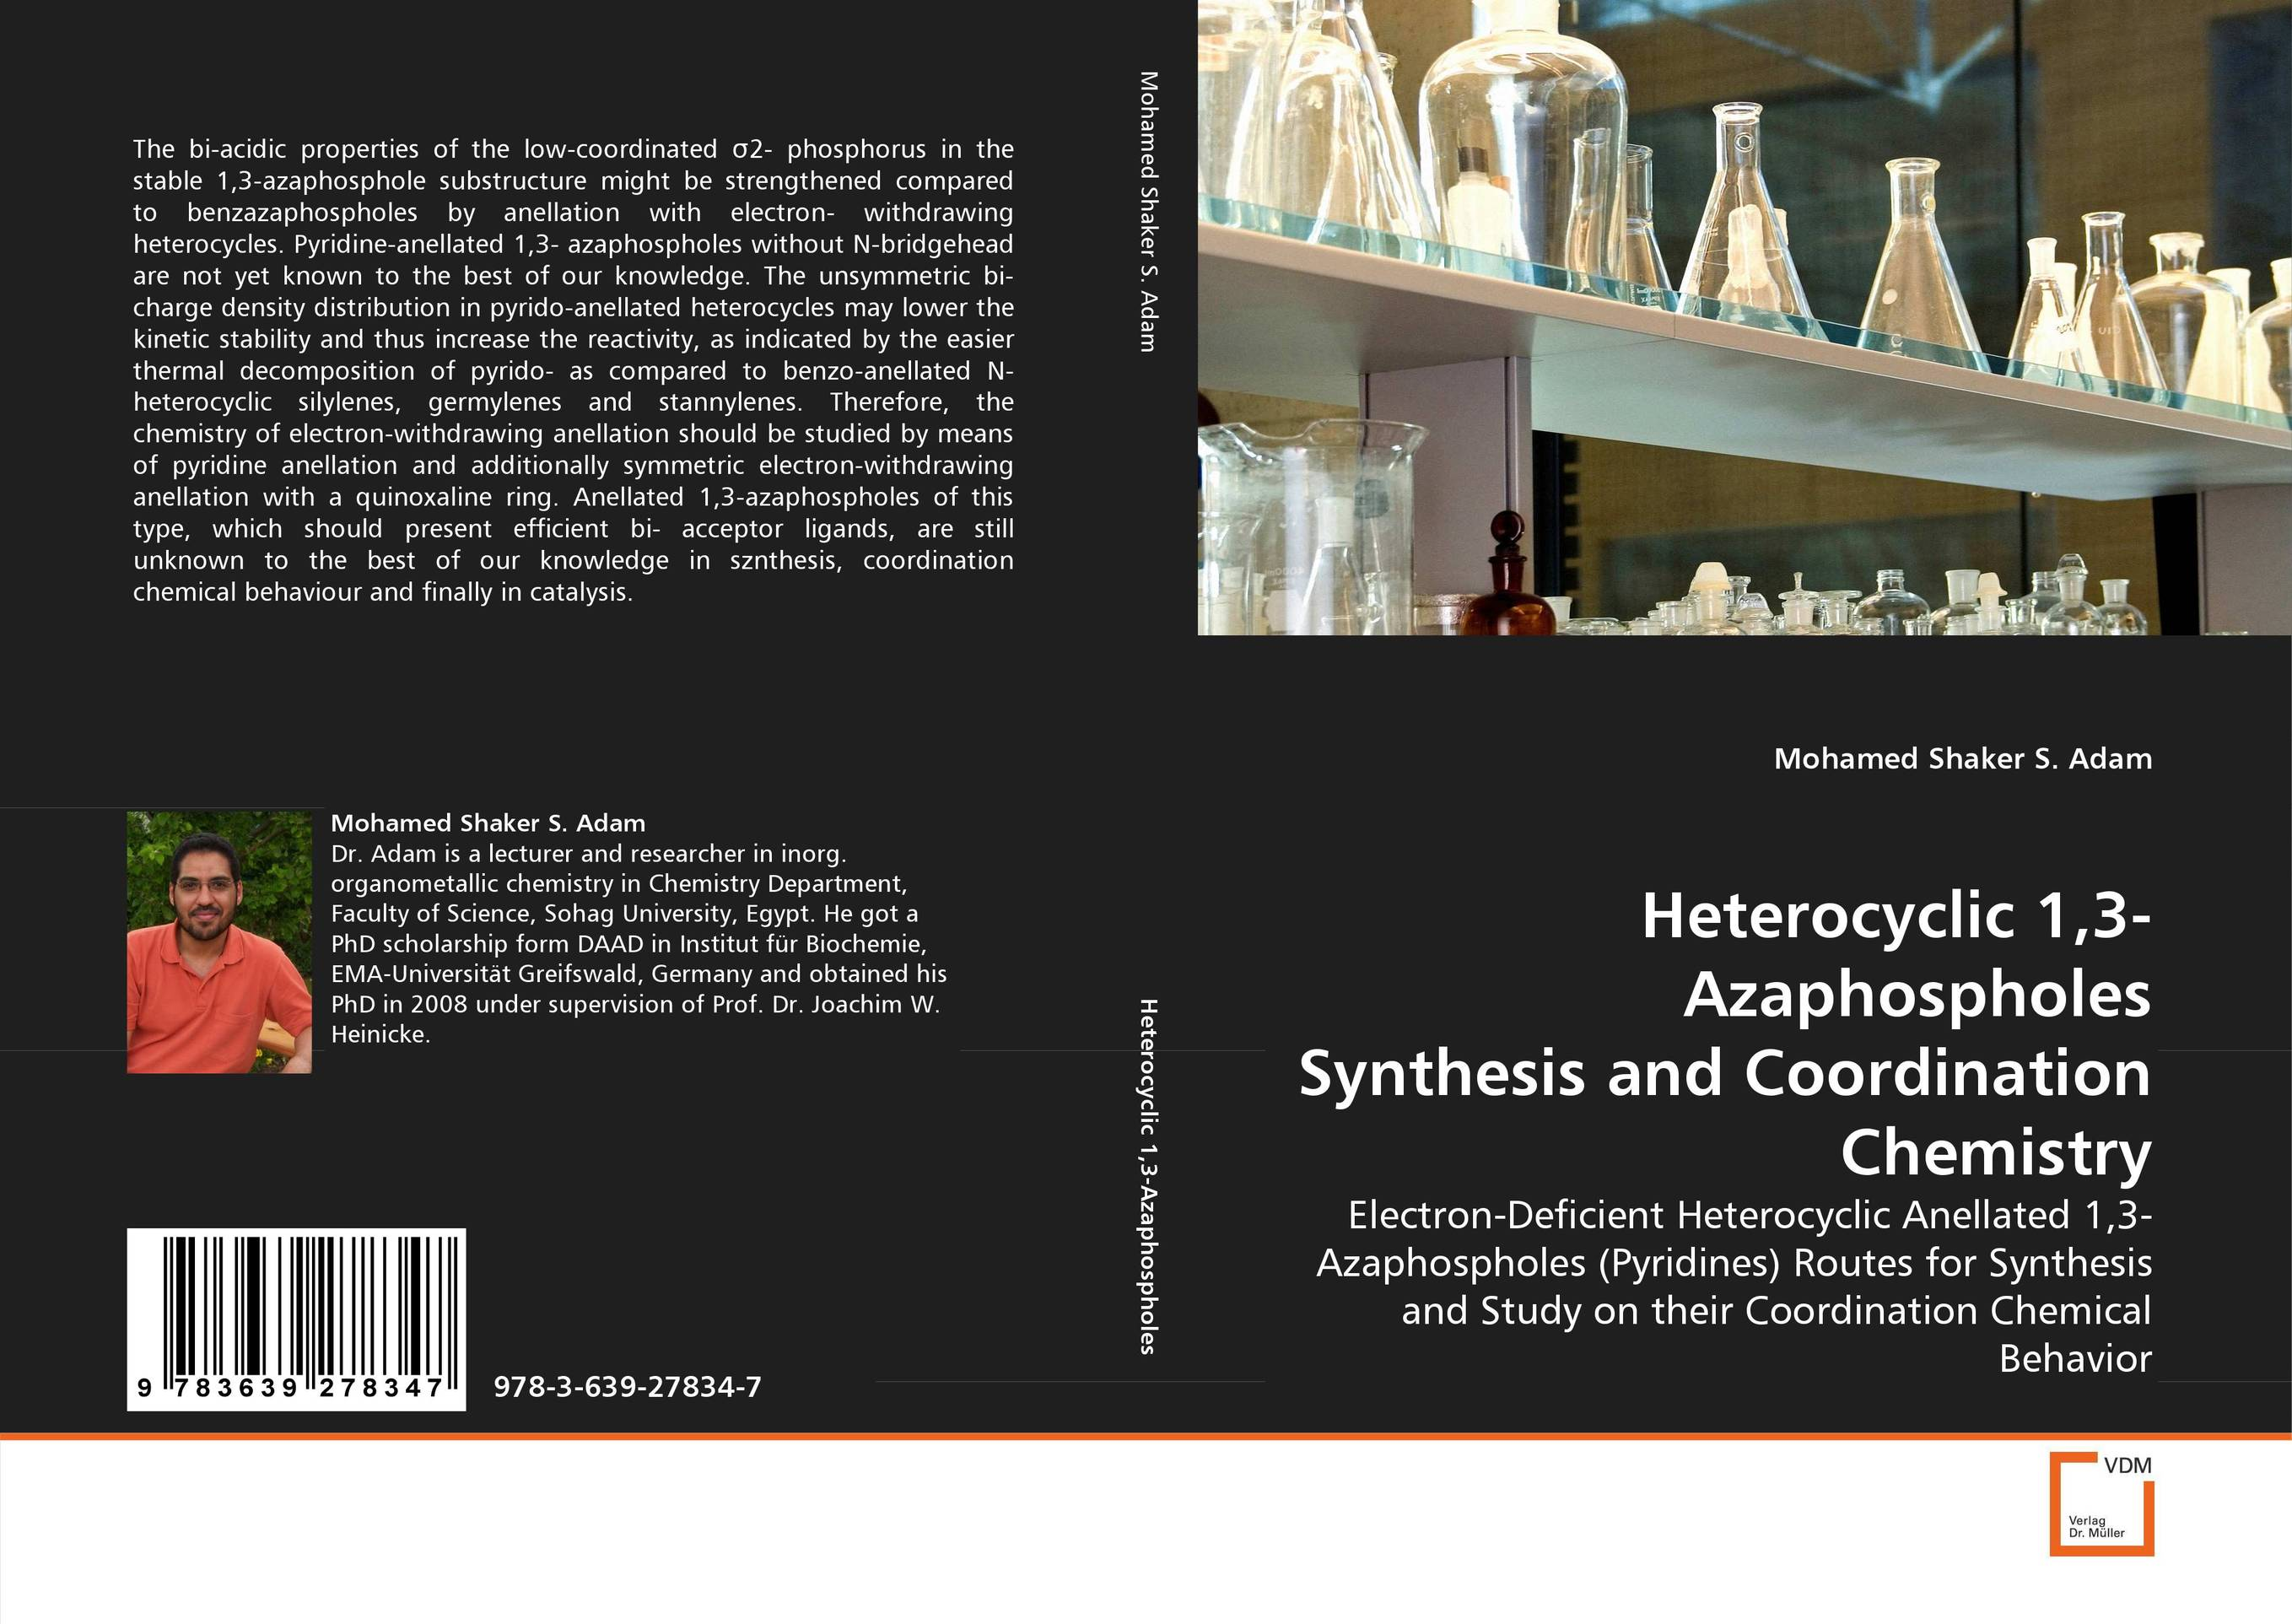 Heterocyclic 1,3-Azaphospholes Synthesis and Coordination Chemistry